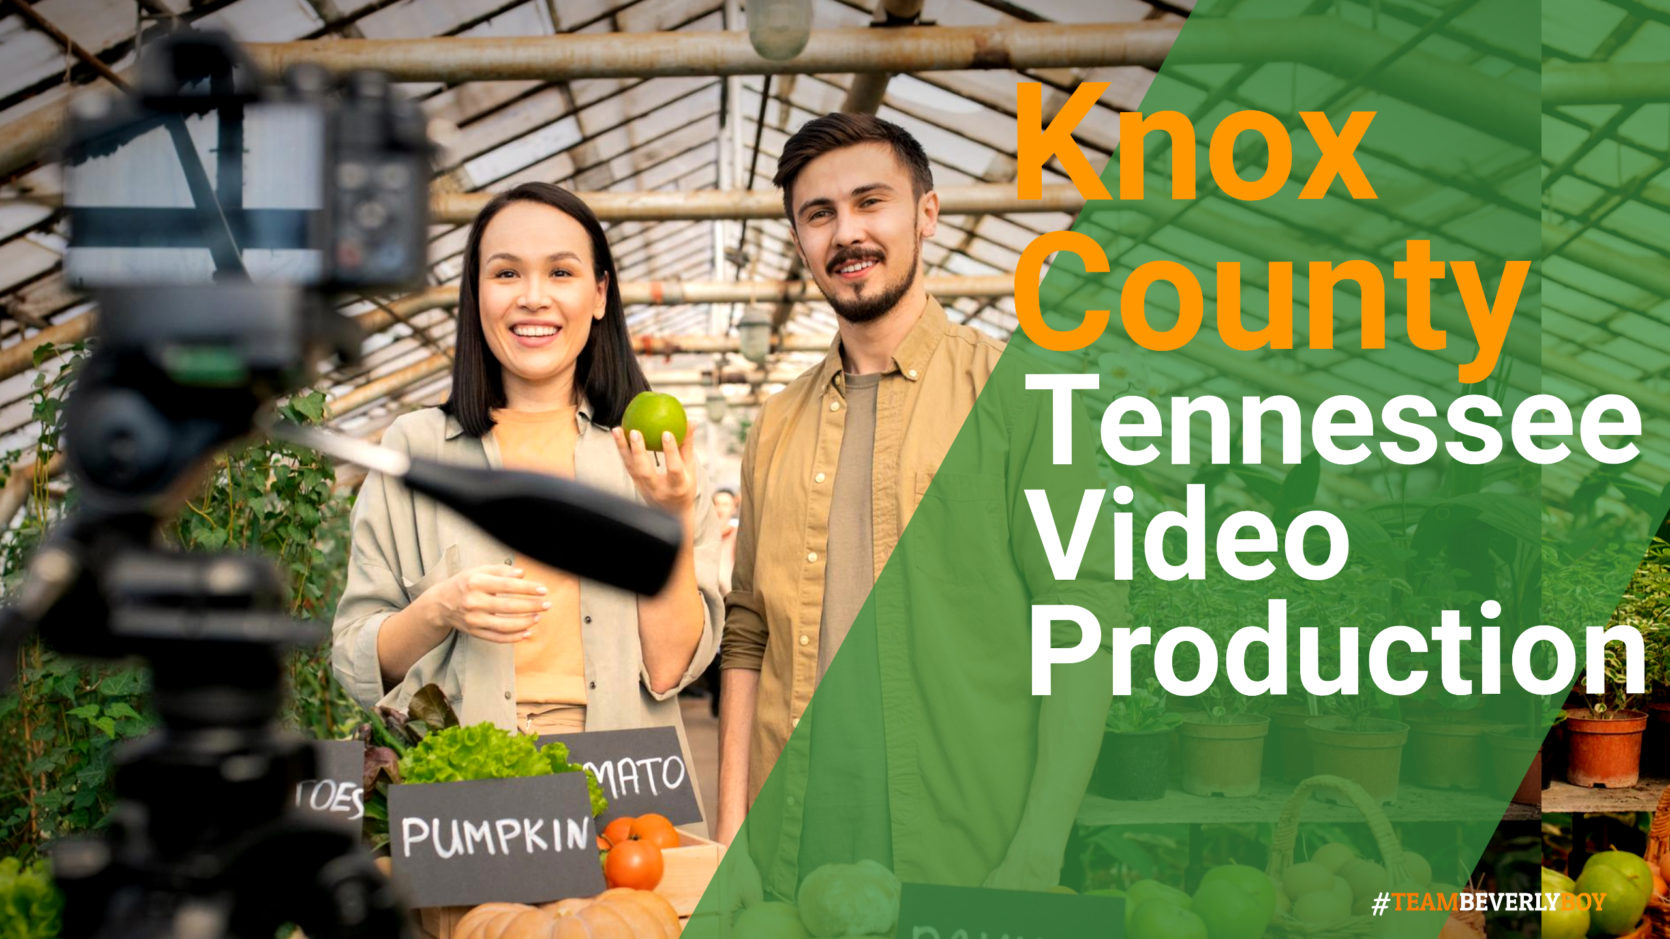 Knox County, TN Video Production